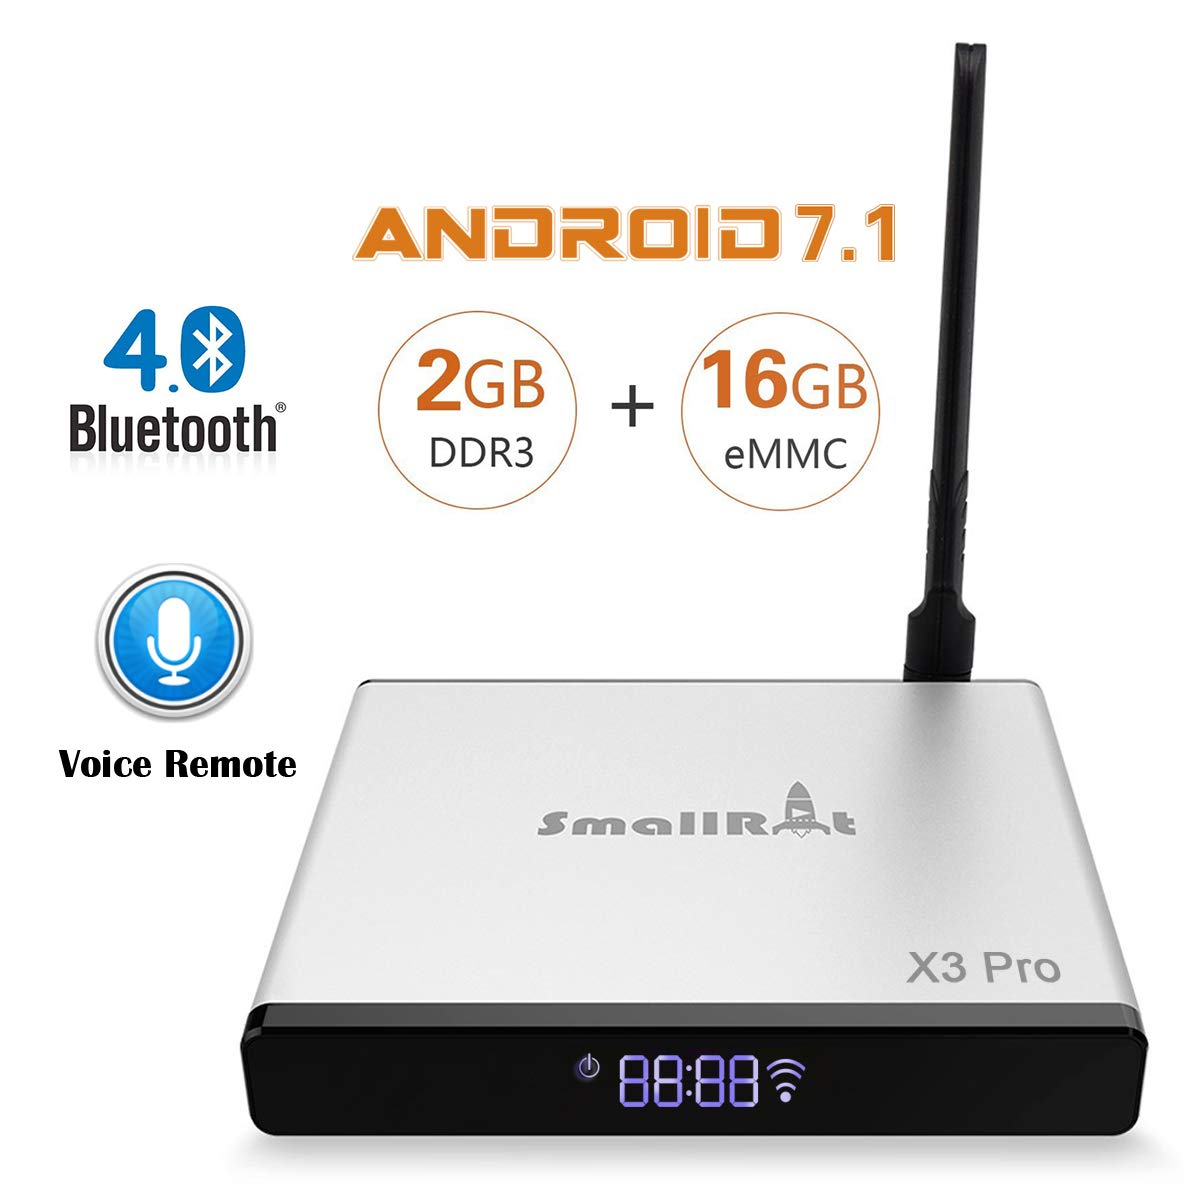 Google Android 7.1 OS TV Box SmallRocket X3 PRO 4K 3D Media Player 2G RAM 16G ROM Smart Mini Box with Builtin 2.4Ghz WiFi Bluetooth4.0 and Voice Remote